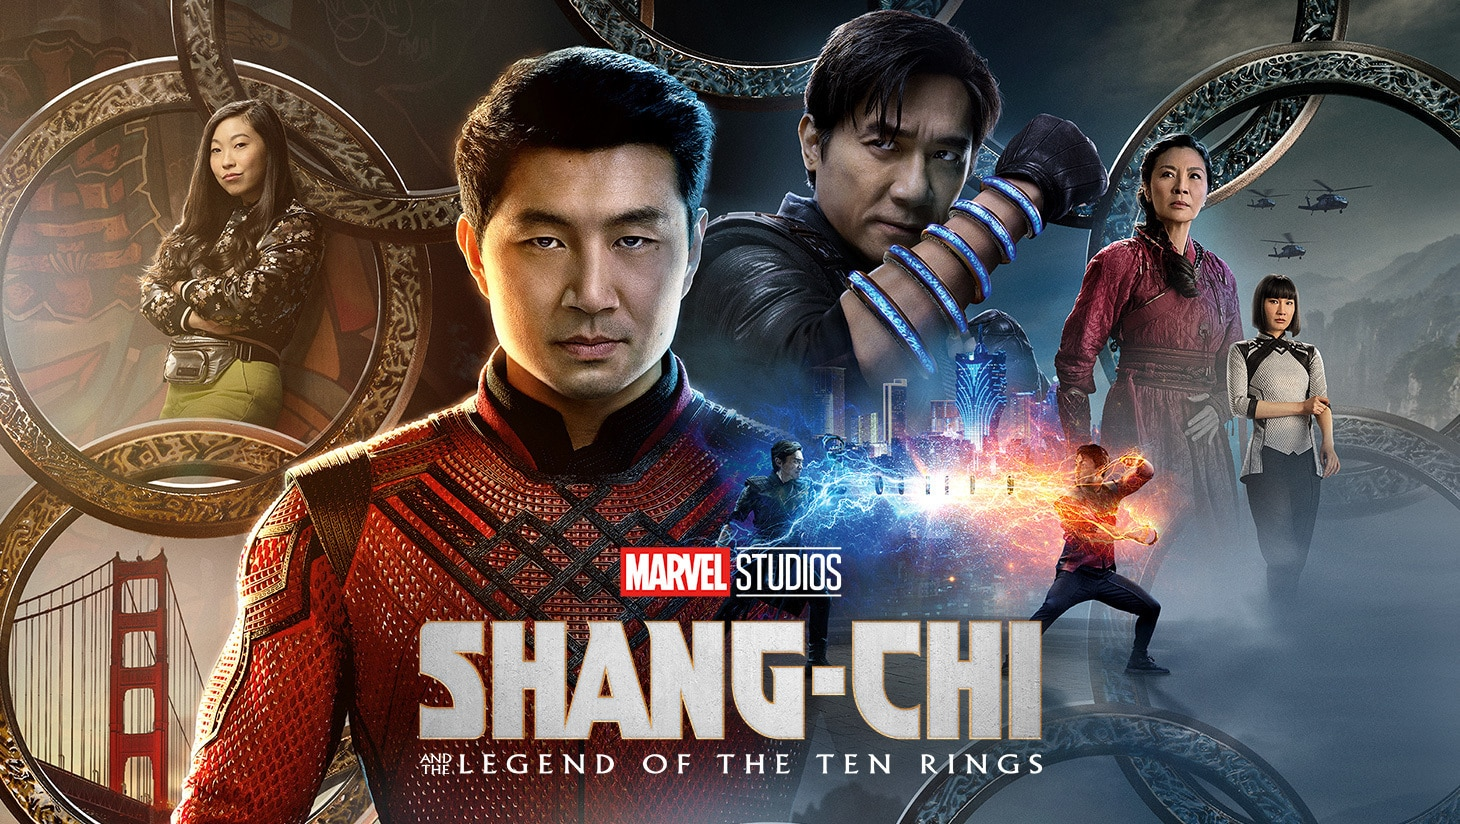 Marvel Studios' Shang-Chi and The Legend of The Ten Rings art